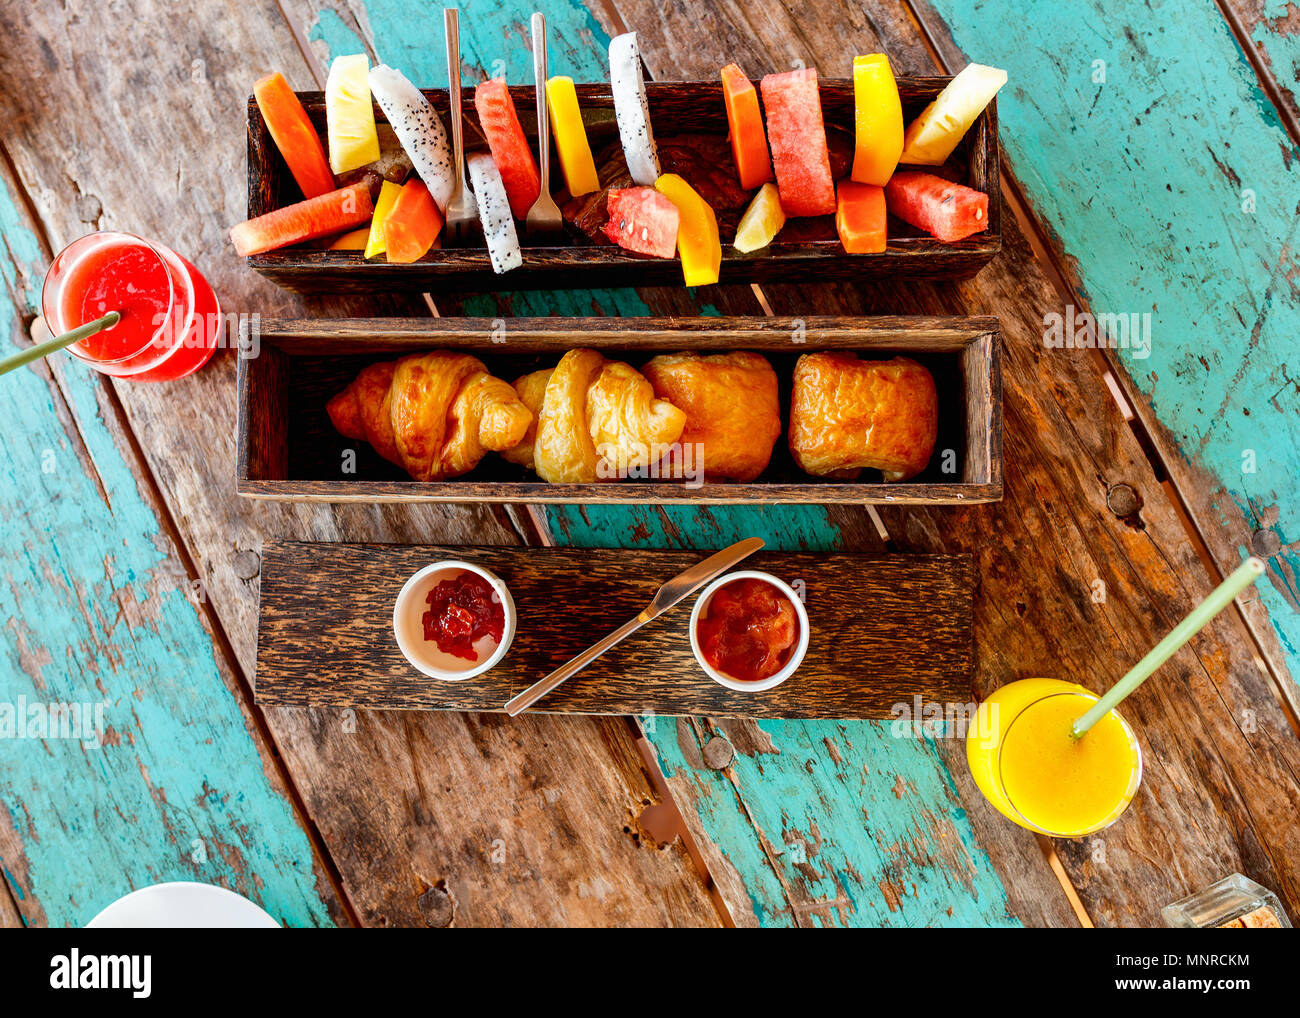 Vue de dessus de délicieux aliments biologiques servis pour le petit-déjeuner sur la table en bois rustique. Fruits, jus, croissants et confiture télévision lay. Photo Stock